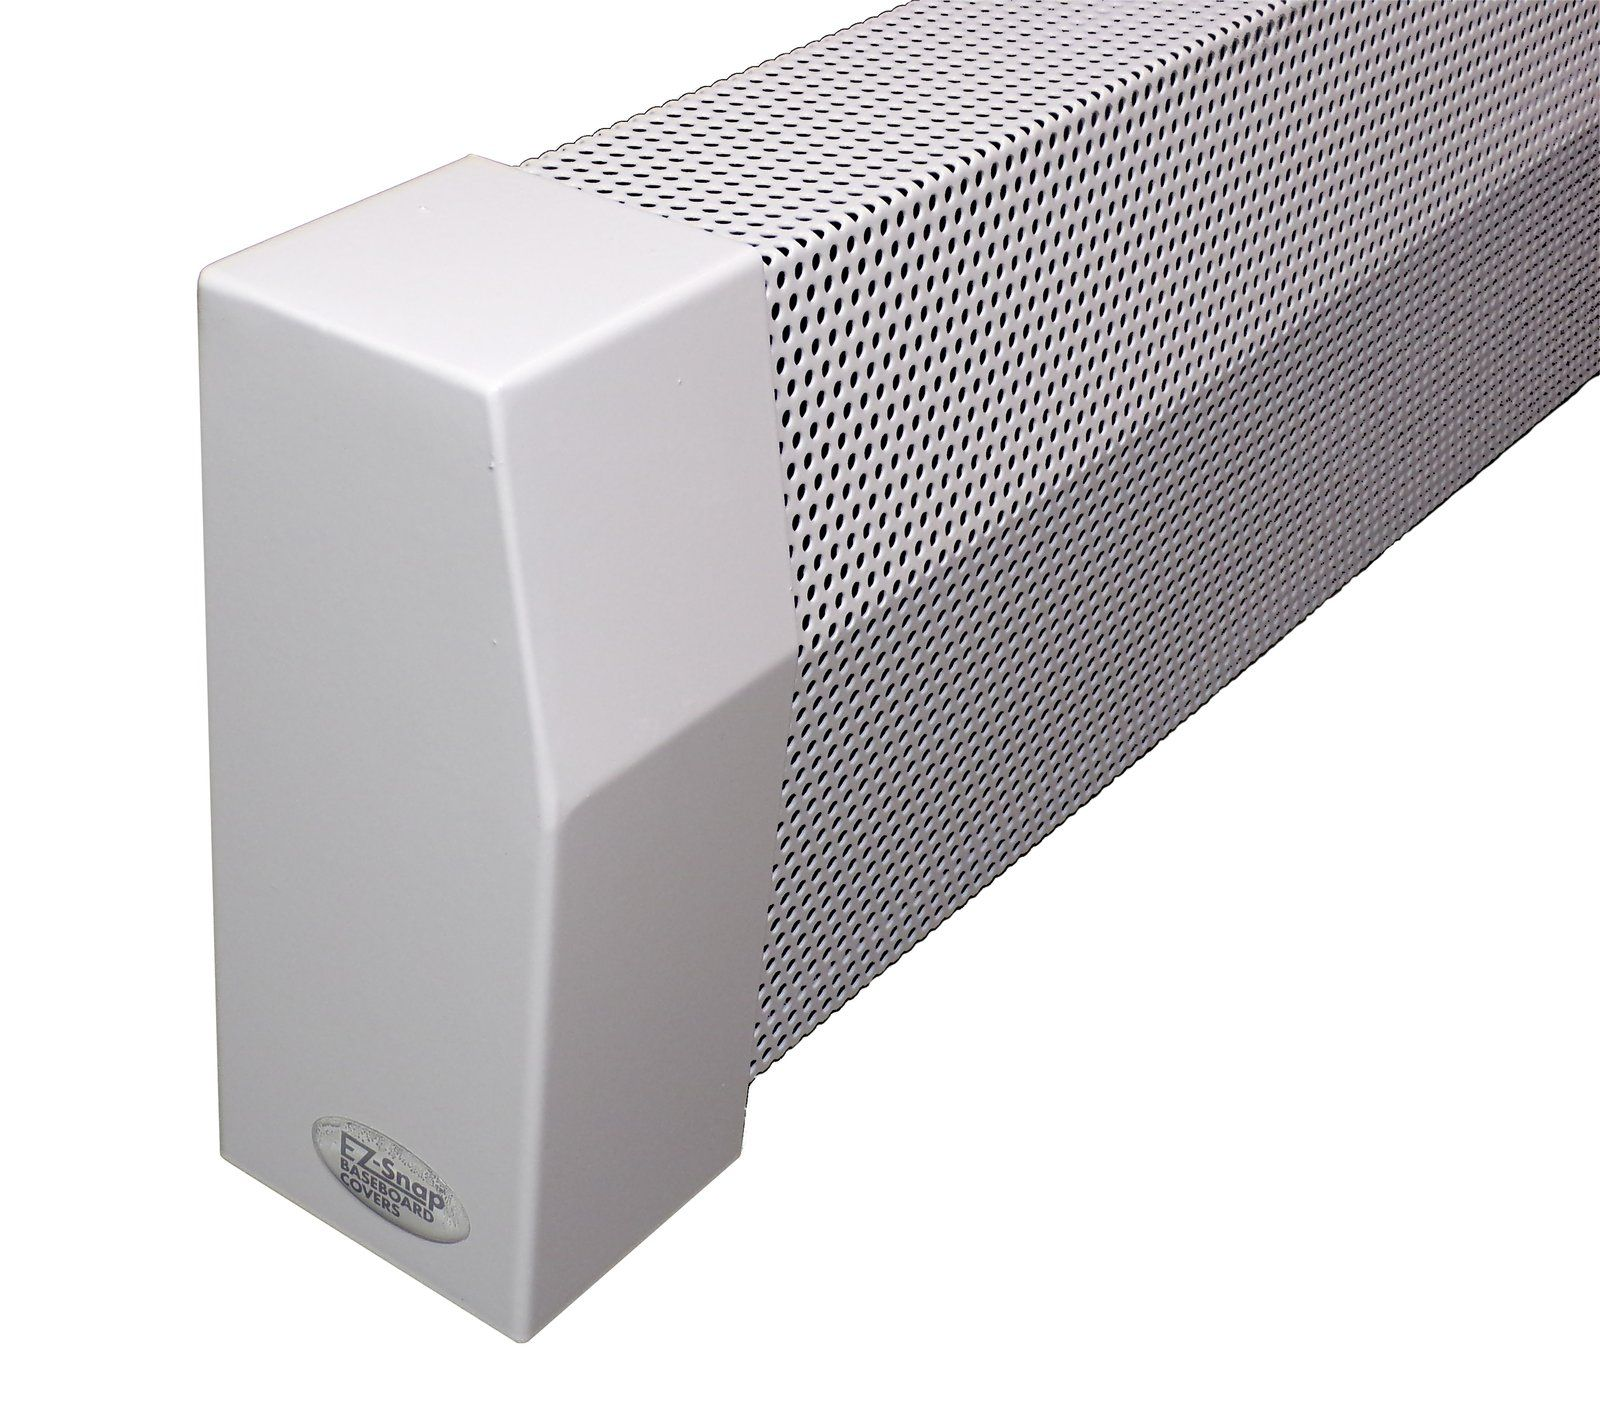 Ez Snap Covers Standard Height 7 1 2 White Baseboard Heater Cover Kit With 2 Closed End Caps Baseboard Heater Covers Heater Cover White Baseboards